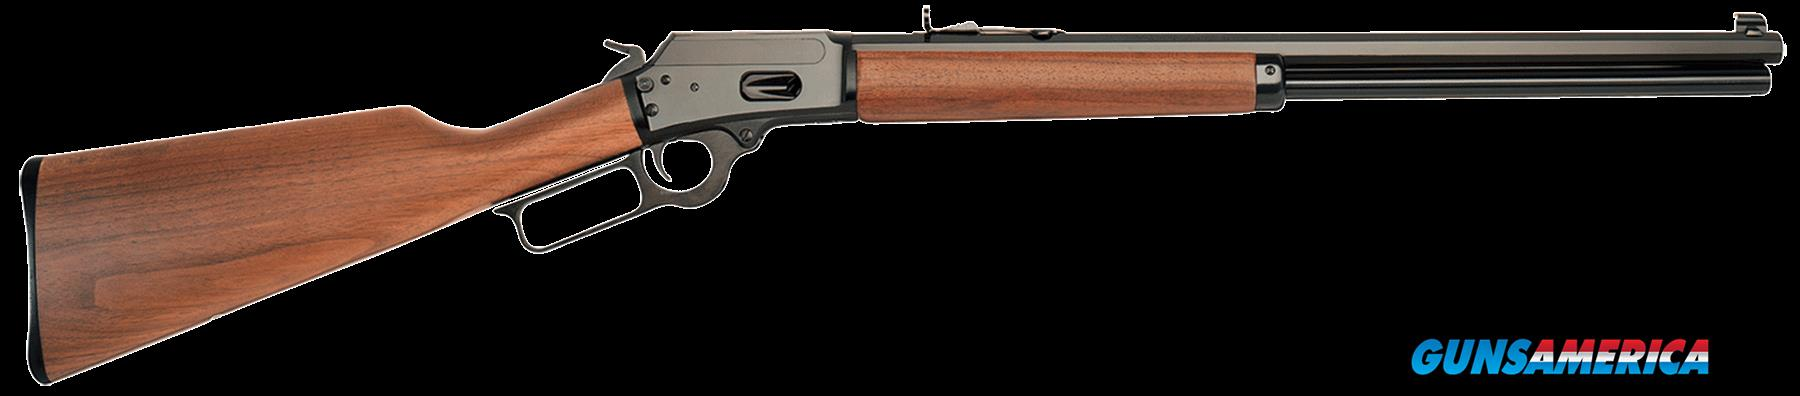 "Marlin 70444 1894 Cowboy Lever 45 Colt 20"" Octagon Barrel 10+1 Walnut Stk Blued  Guns > Rifles > MN Misc Rifles"